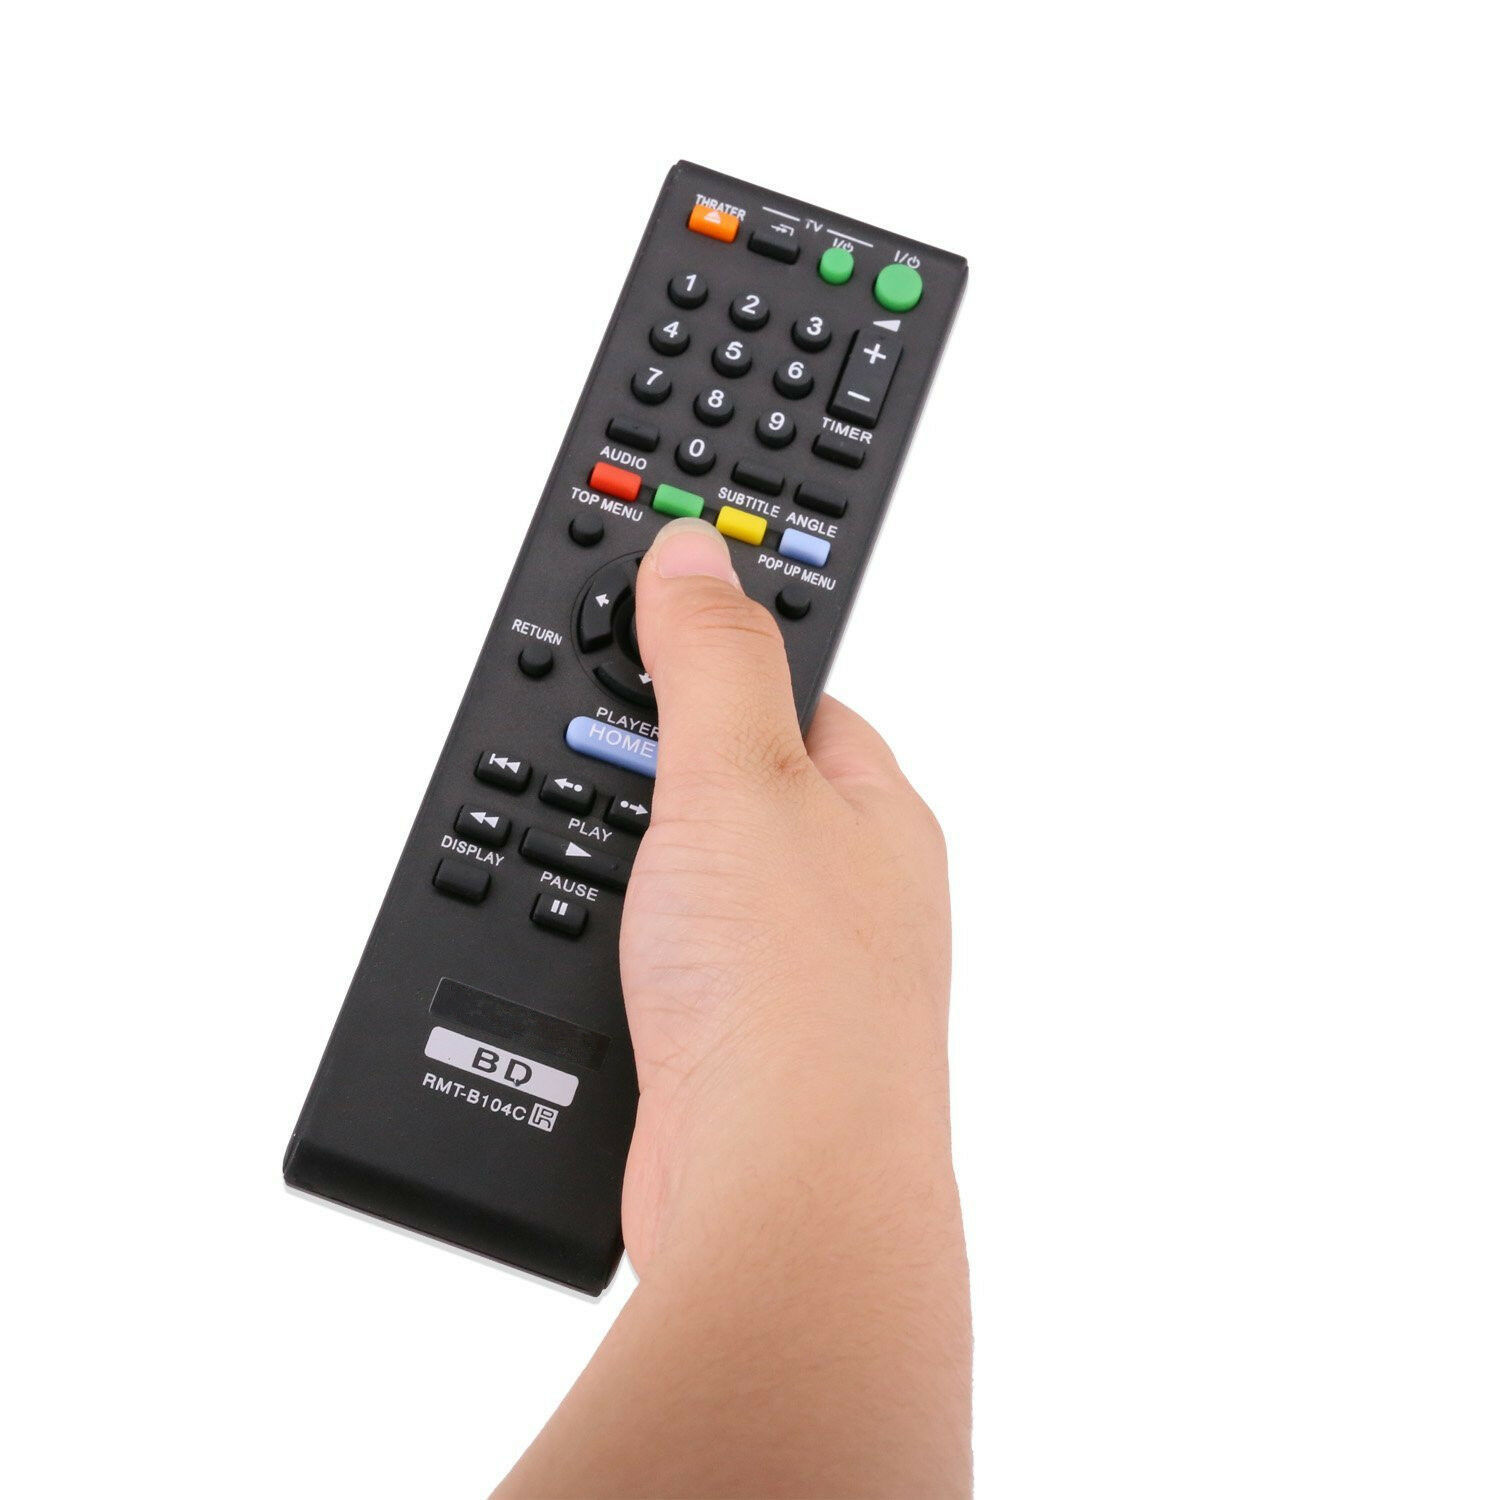 RMT-B105A,RMT-B105P,BDP-BX2 Universal Remote and similar items